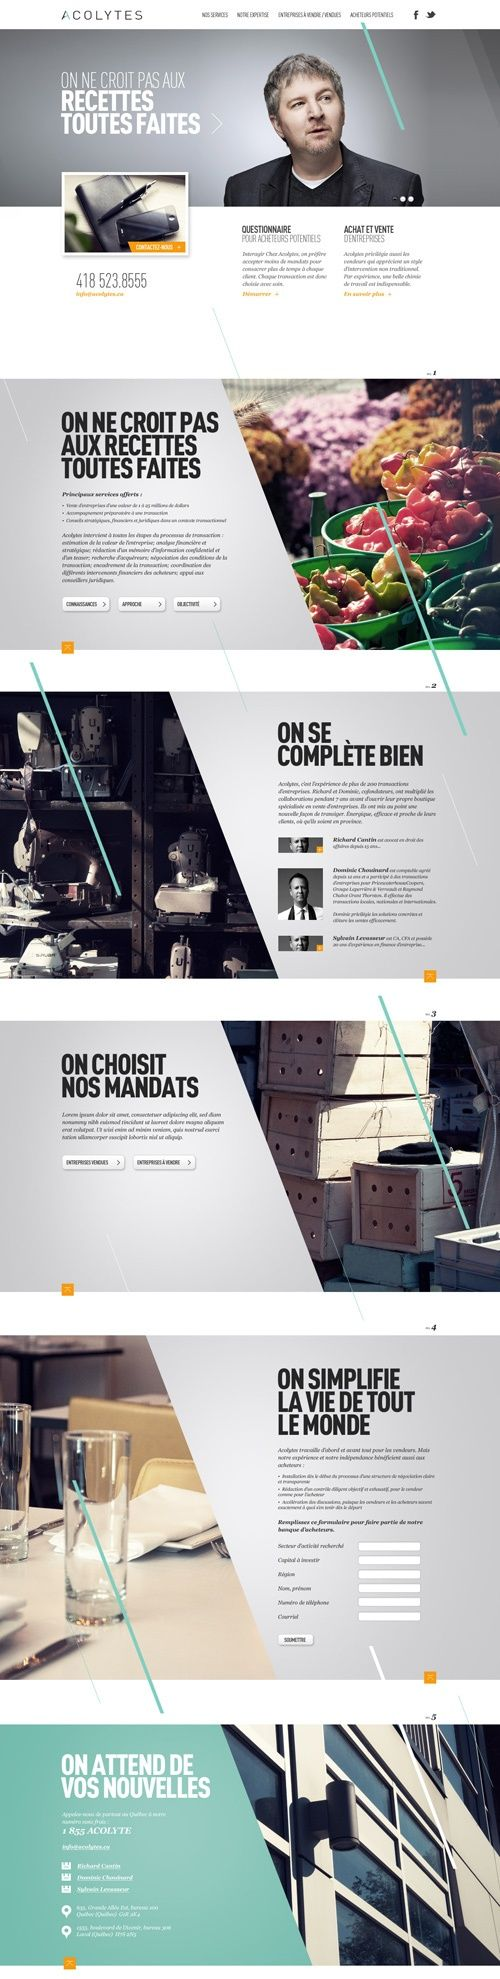 25 Awesome Web Designs